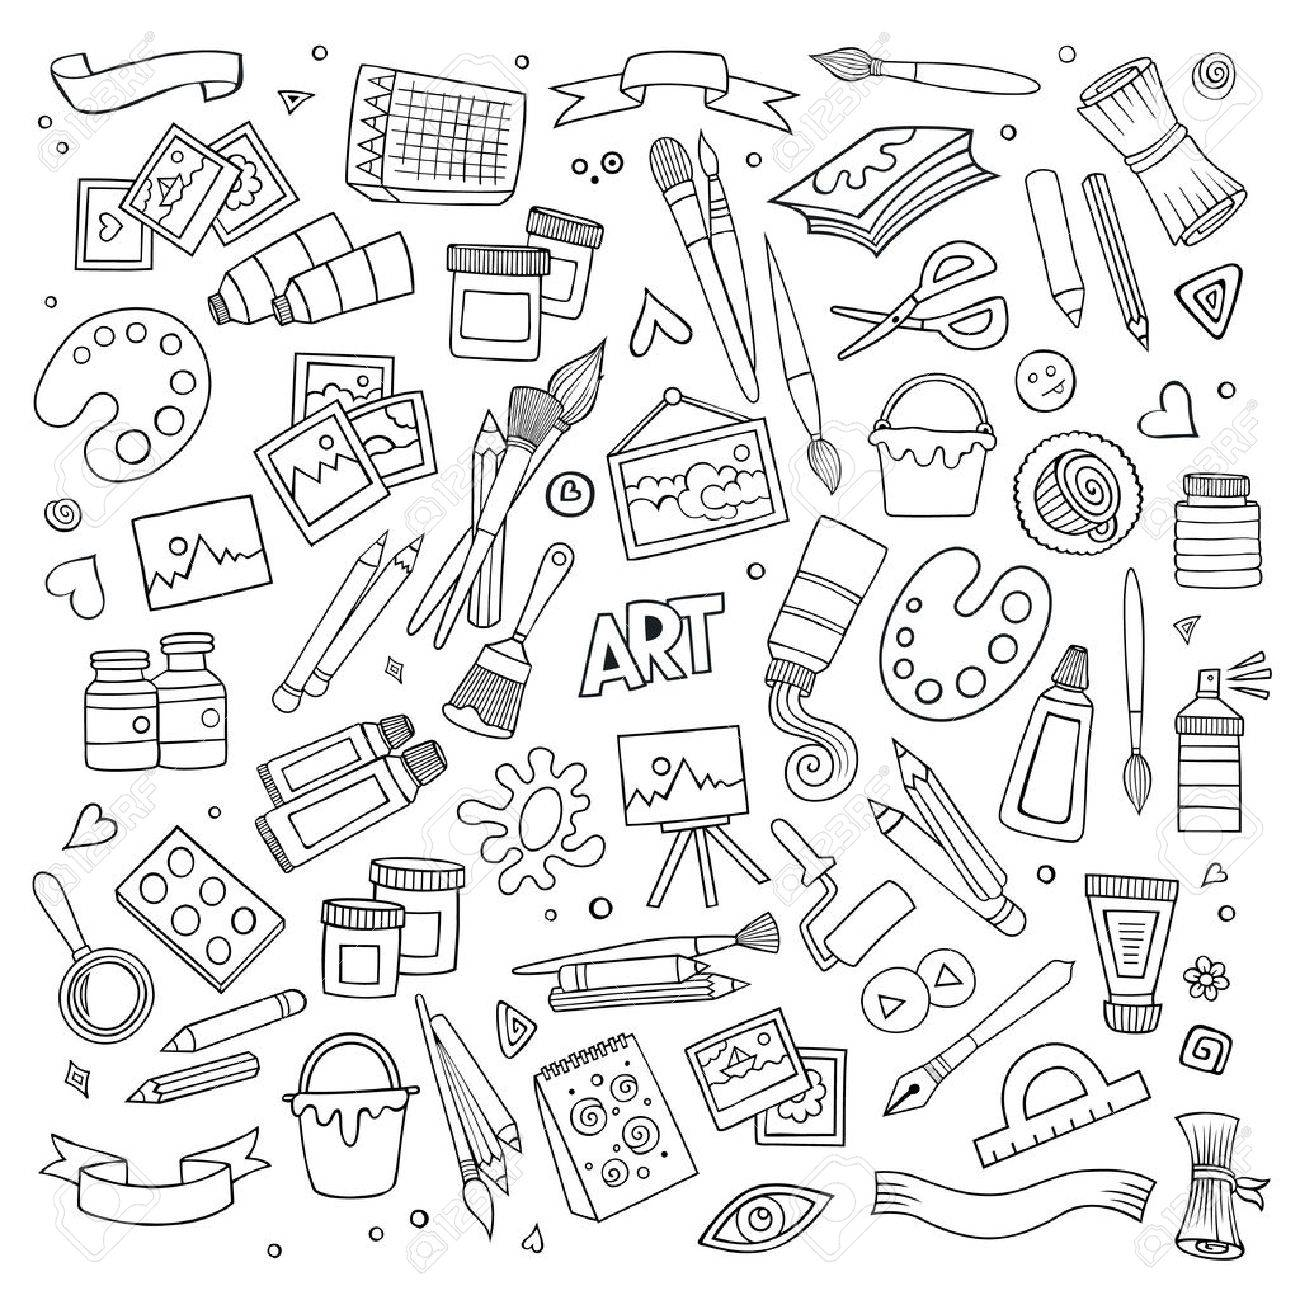 Art and craft hand drawn vector symbols and objects - 41389180